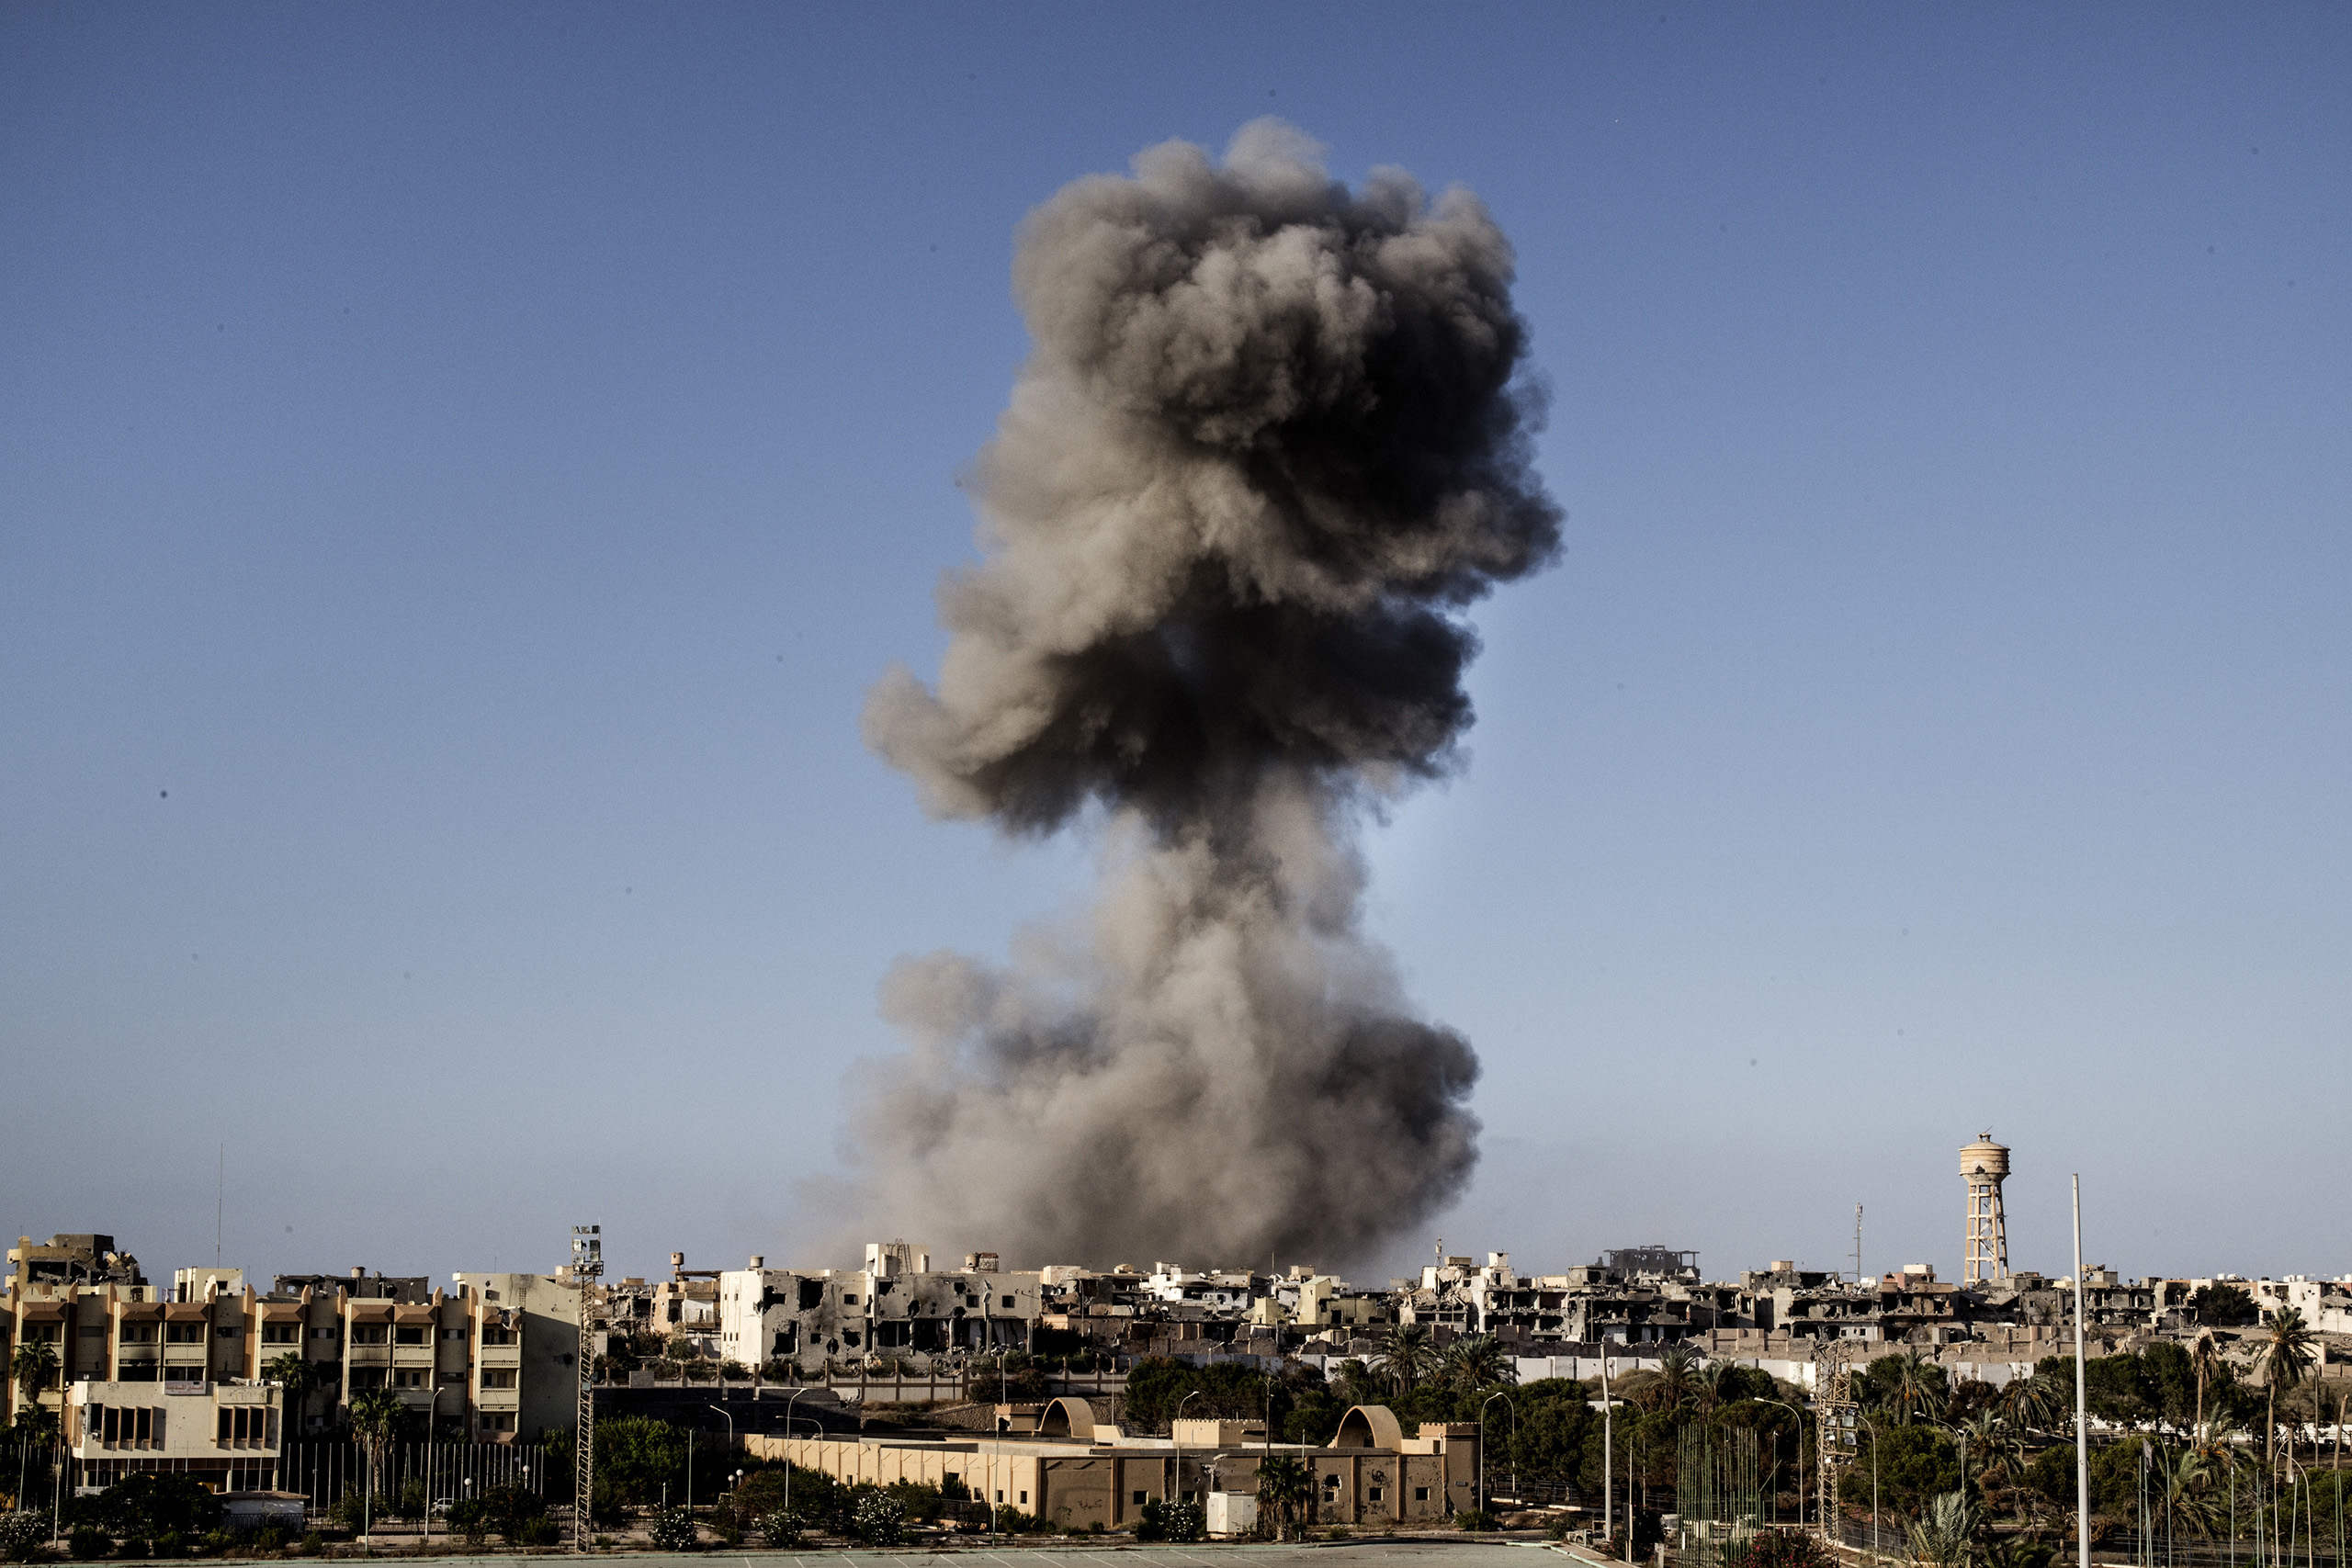 Smoke rises after an airstrike in District 3 of Sirte, the last stronghold of Islamic State (ISIS) in Libya, Sept. 28, 2016.